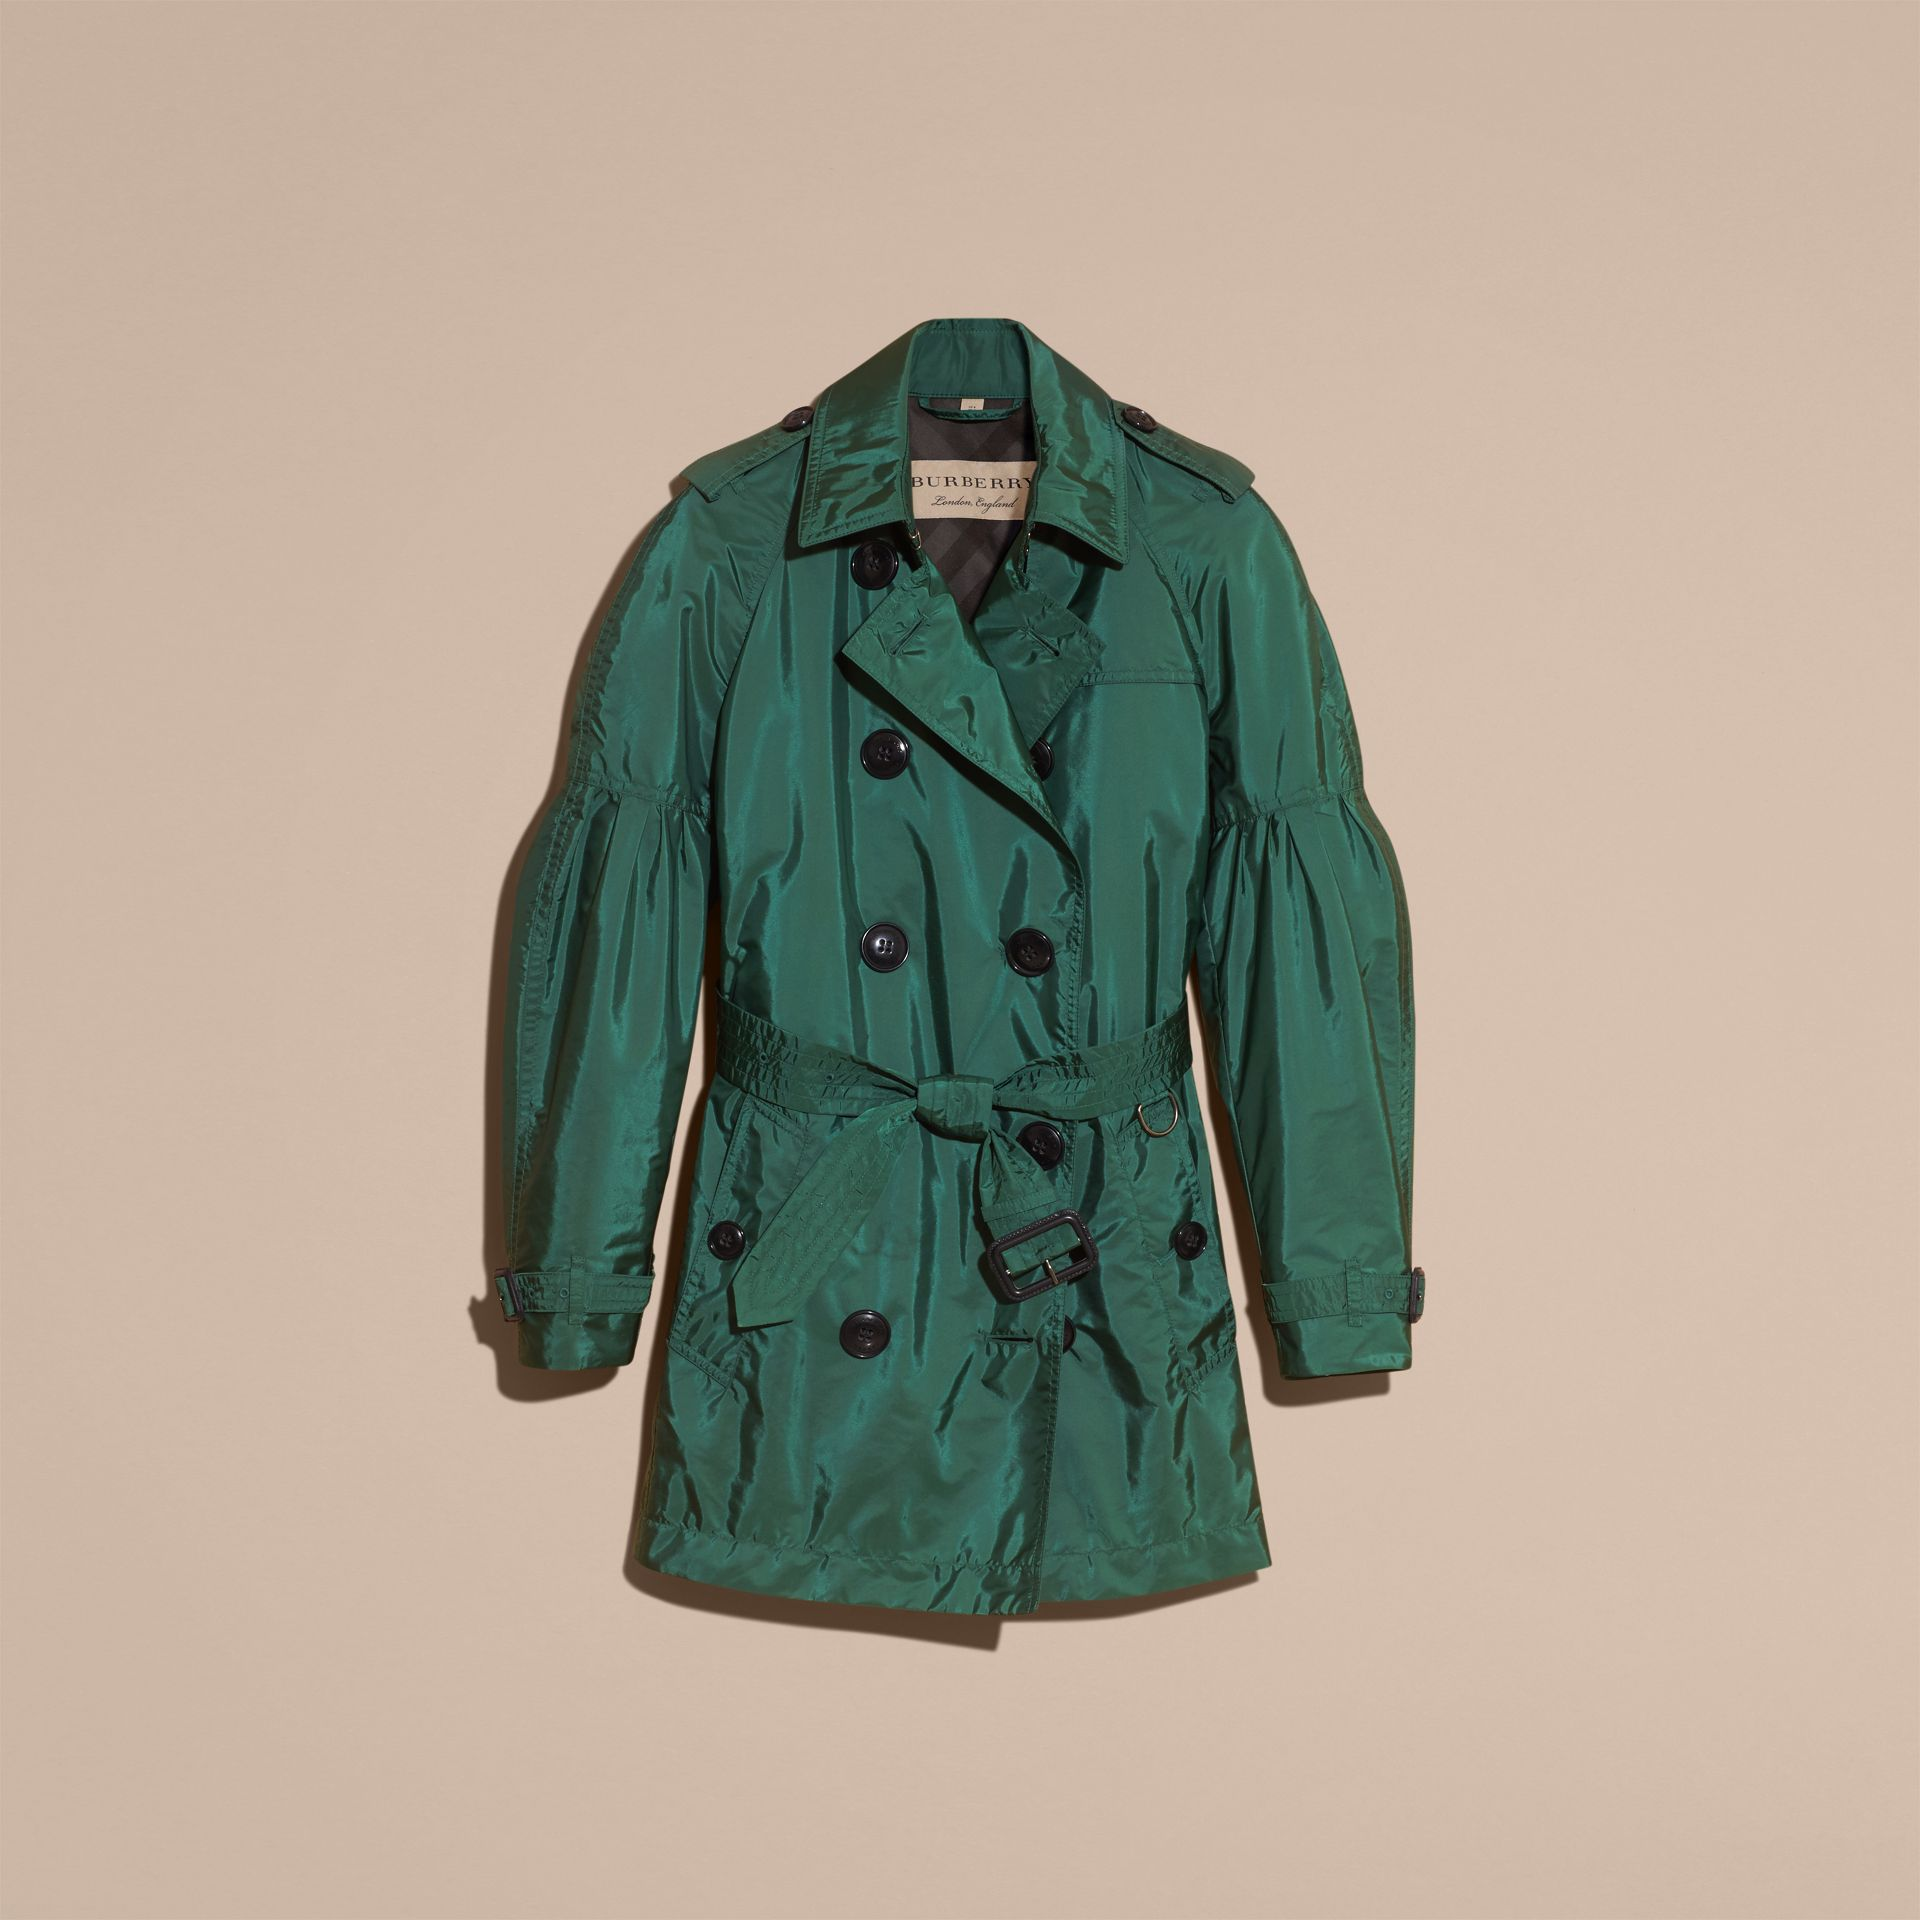 Packaway Trench Coat with Bell Sleeves in Deep Bottle Green - gallery image 4